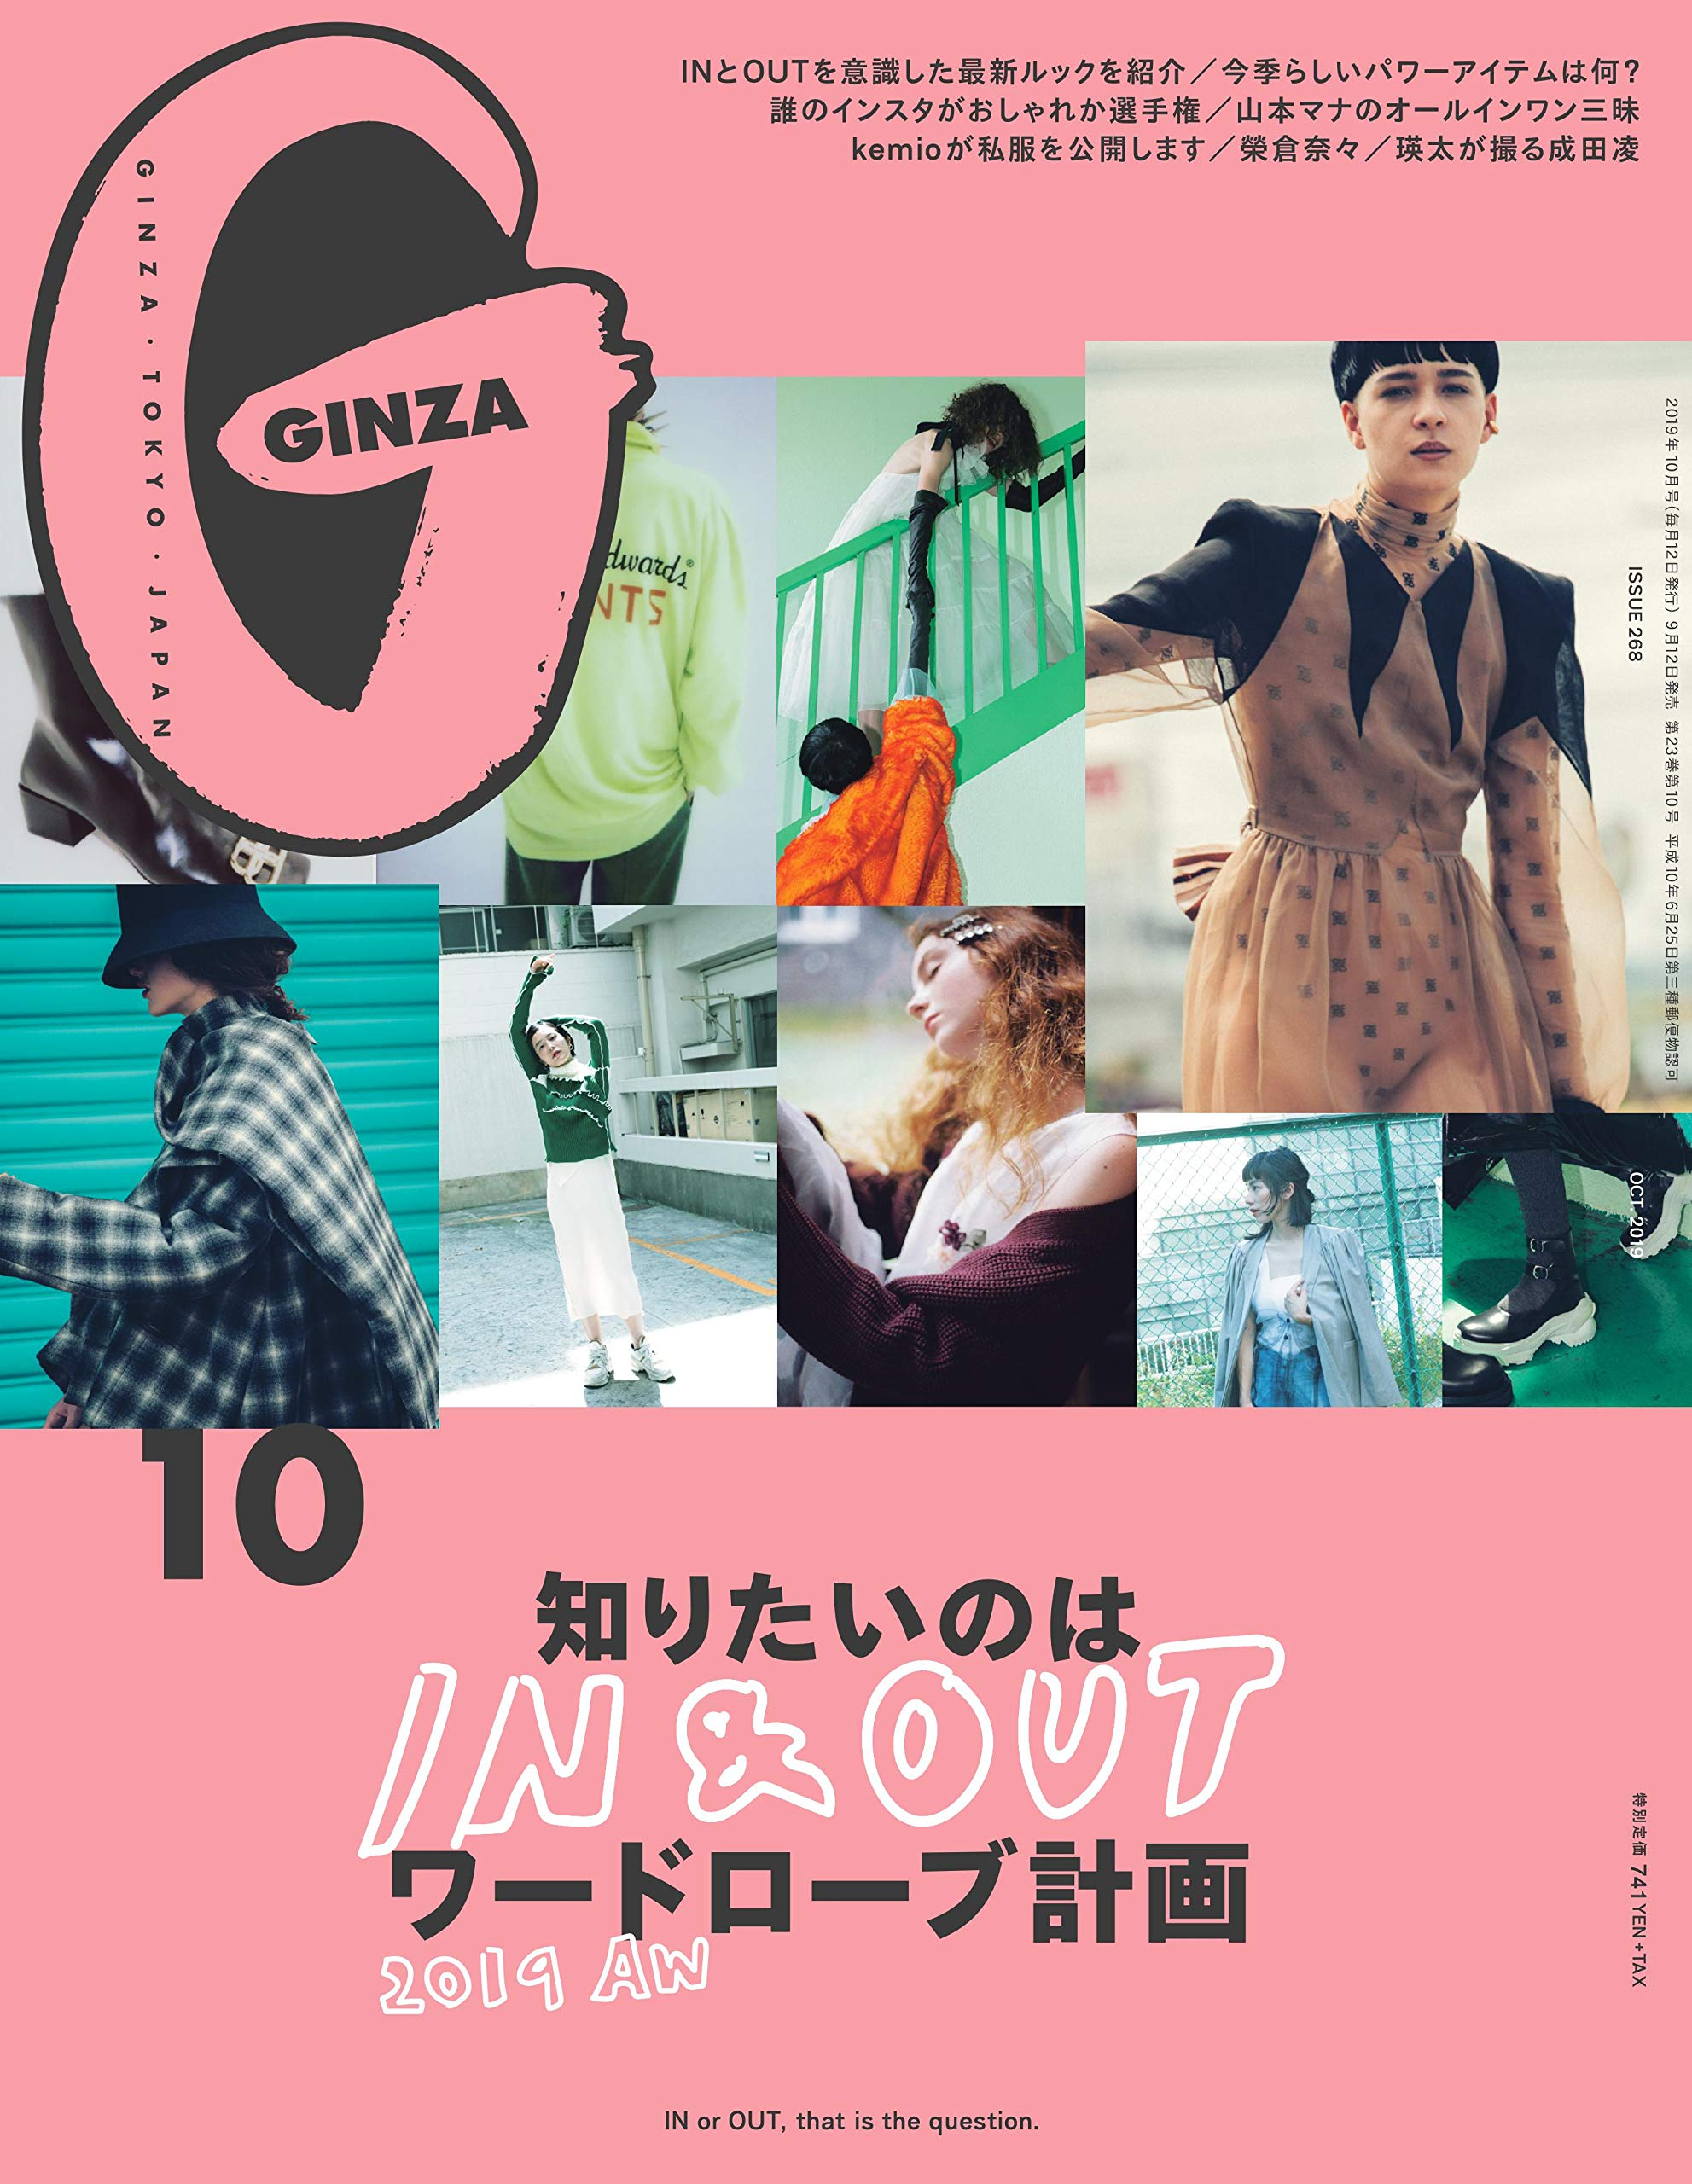 GINZA 2019 Oct